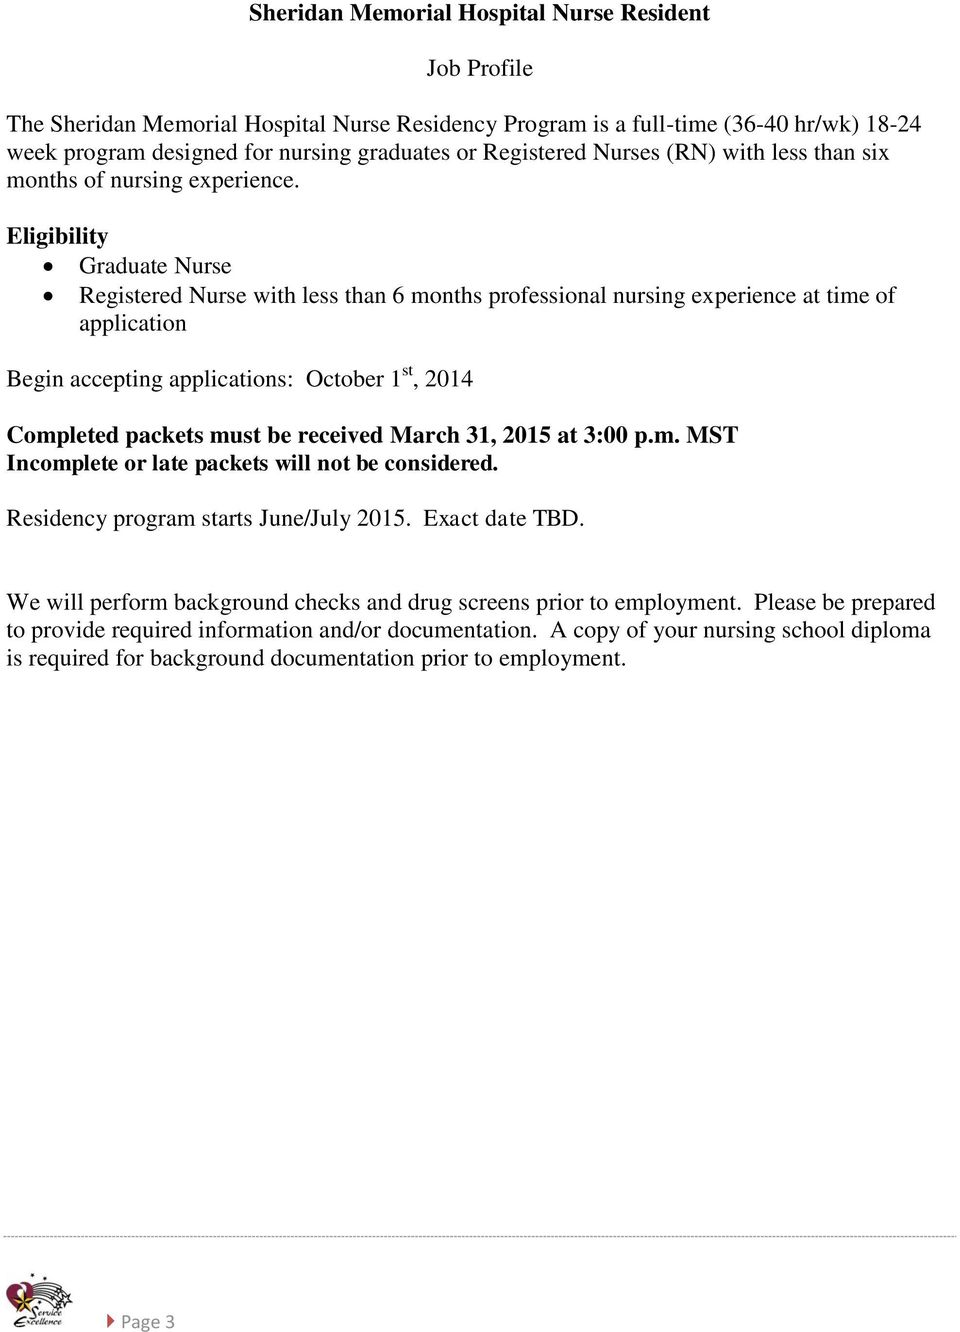 Eligibility Graduate Nurse Registered Nurse with less than 6 months professional nursing experience at time of application Begin accepting applications: October 1 st, 2014 Completed packets must be